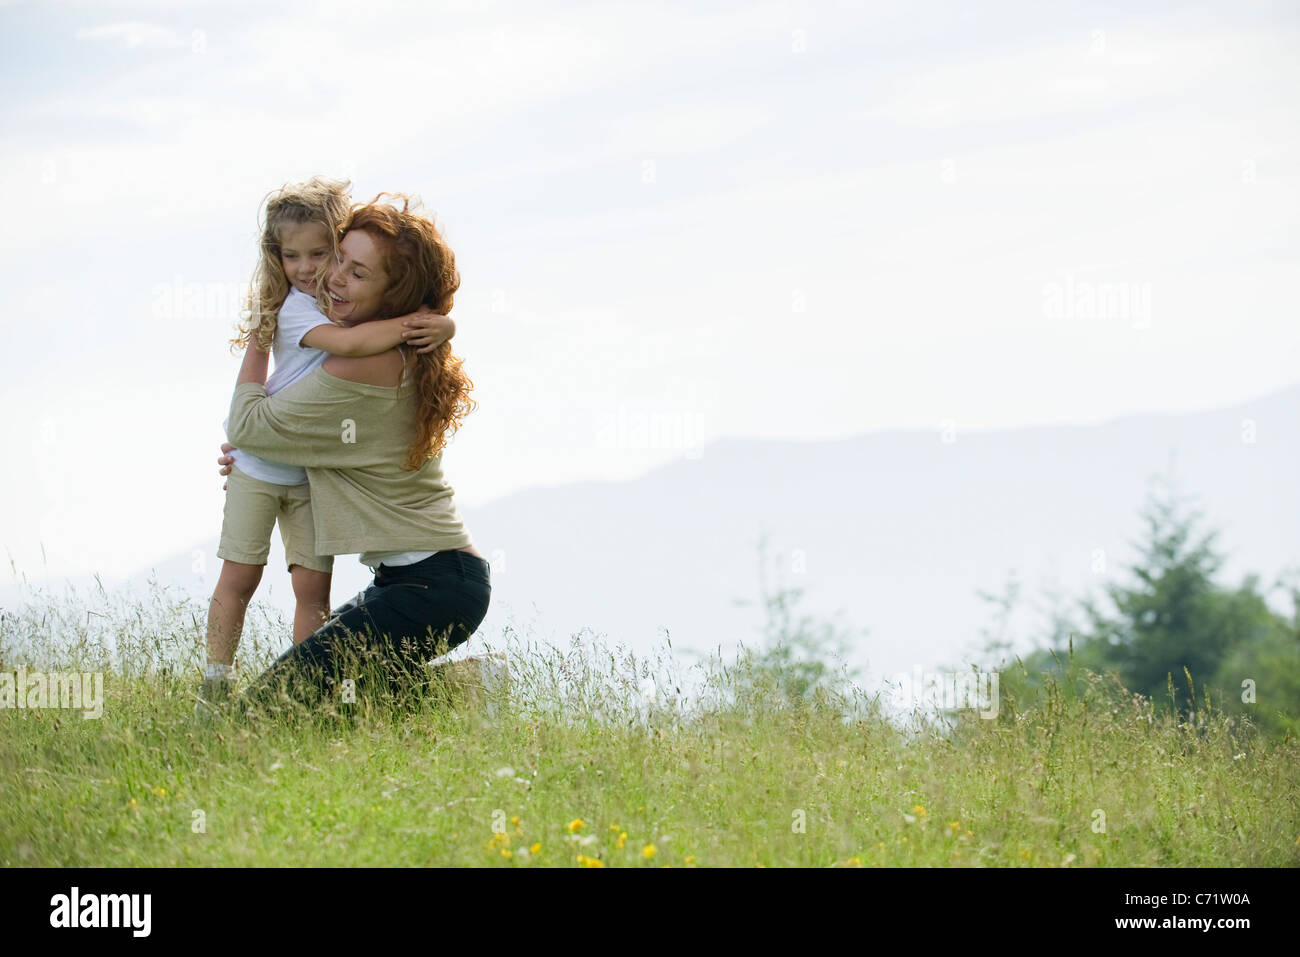 Mother and young daughter embracing in meadow - Stock Image